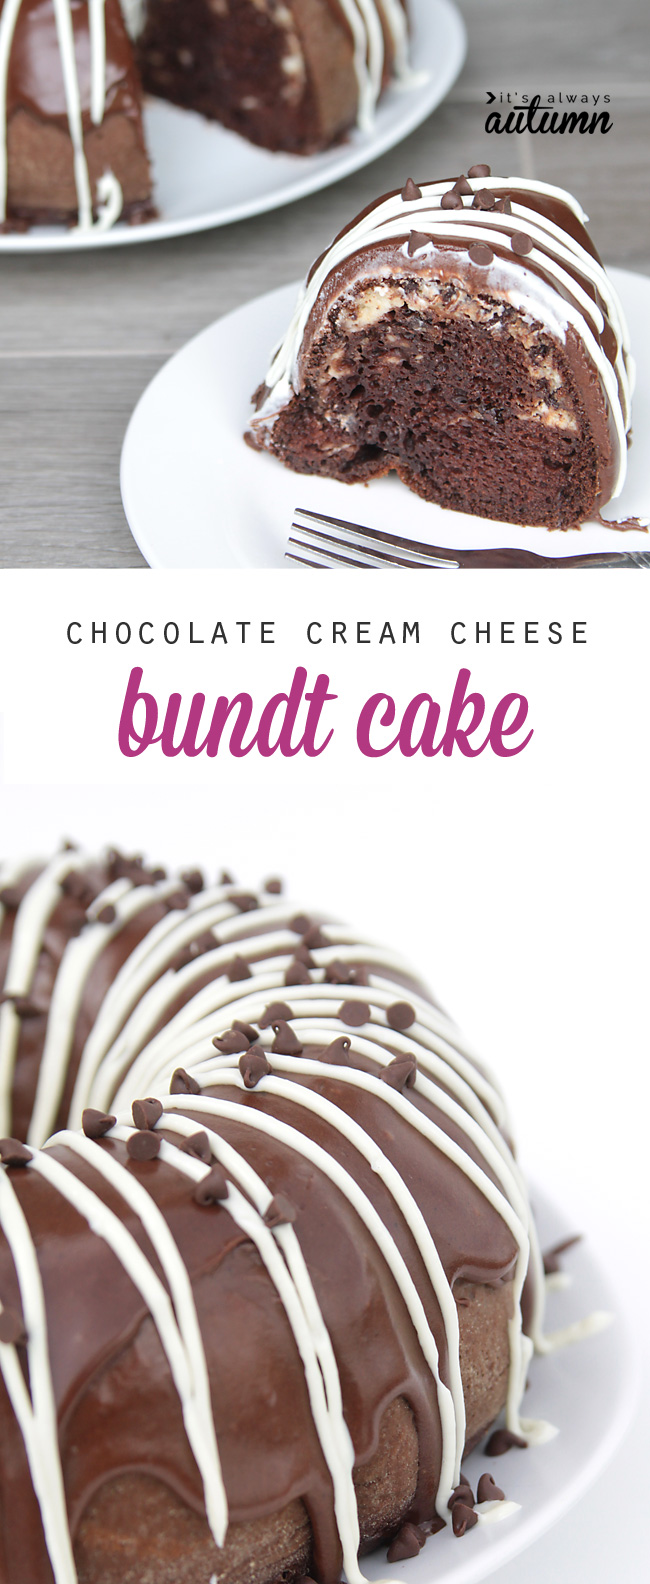 you won't believe how easy it is to make this chocolate cream cheese bundt cake! it starts with a cake mix, and it ends up amazing.